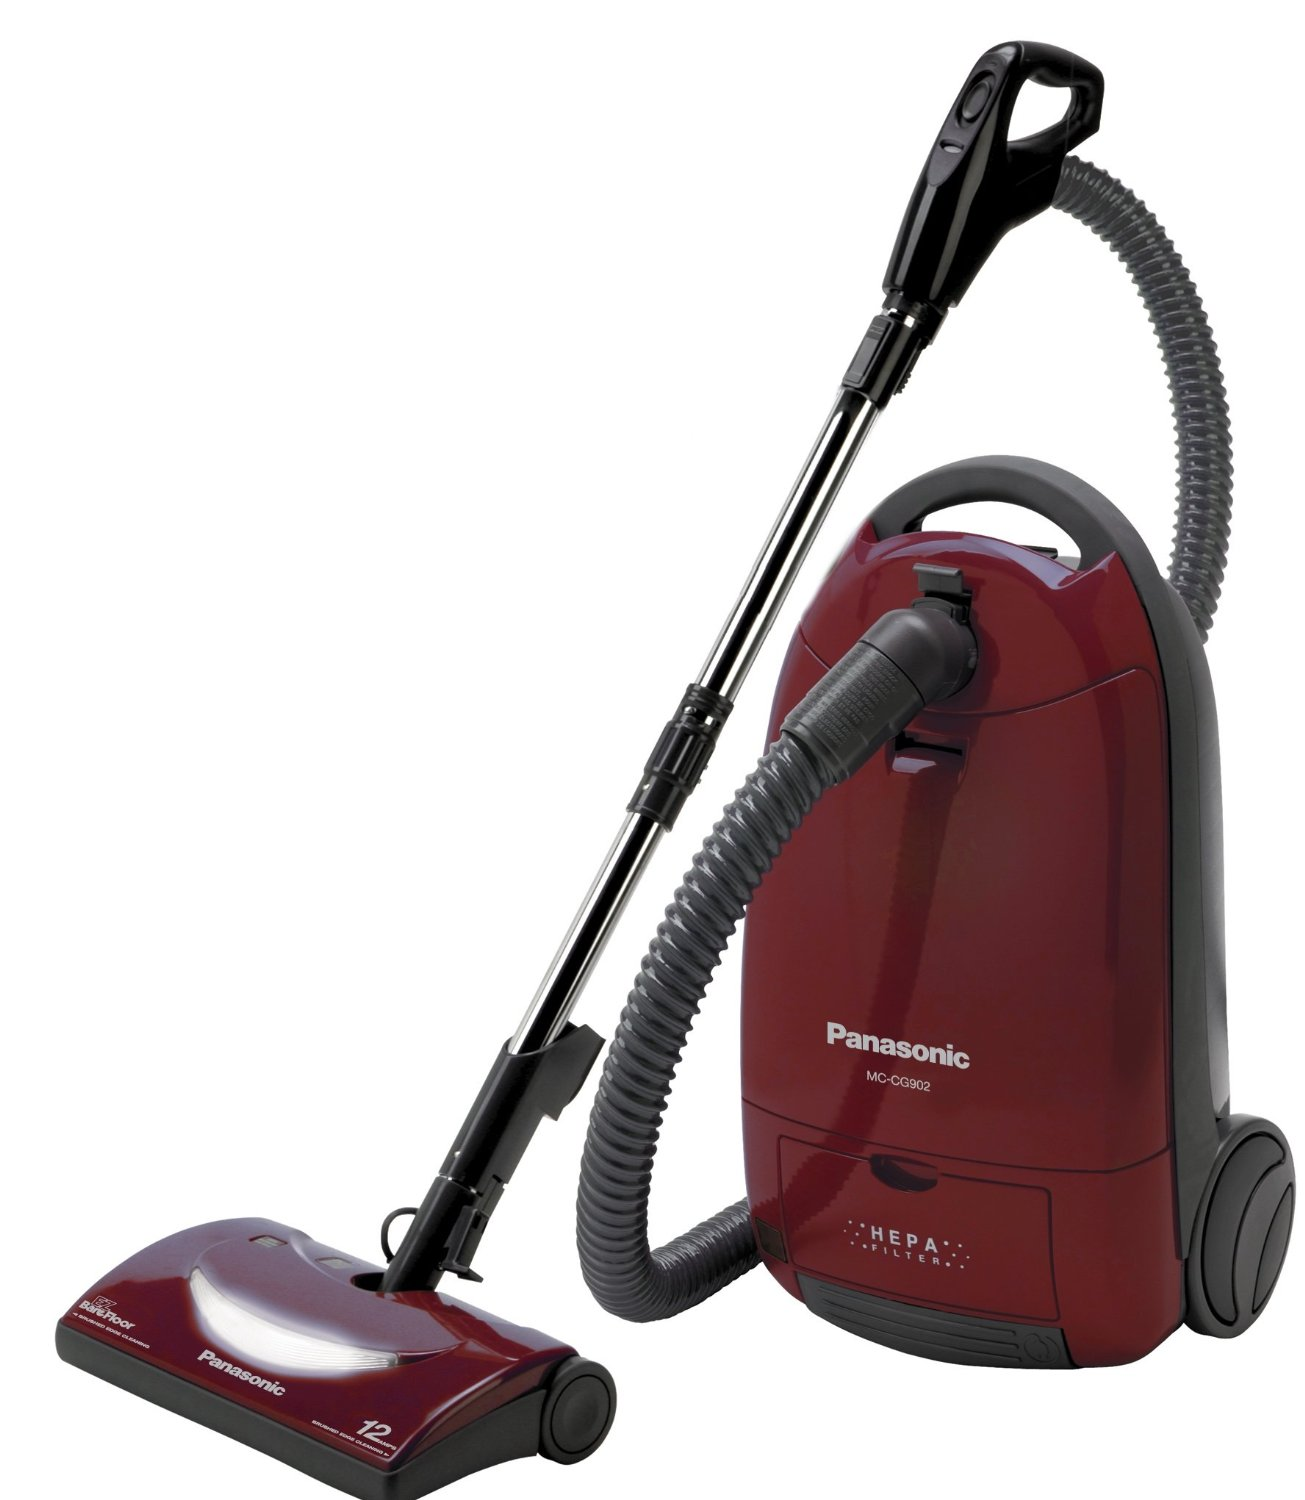 Panasonic Vacum Cleaner (Image 5 of 10)